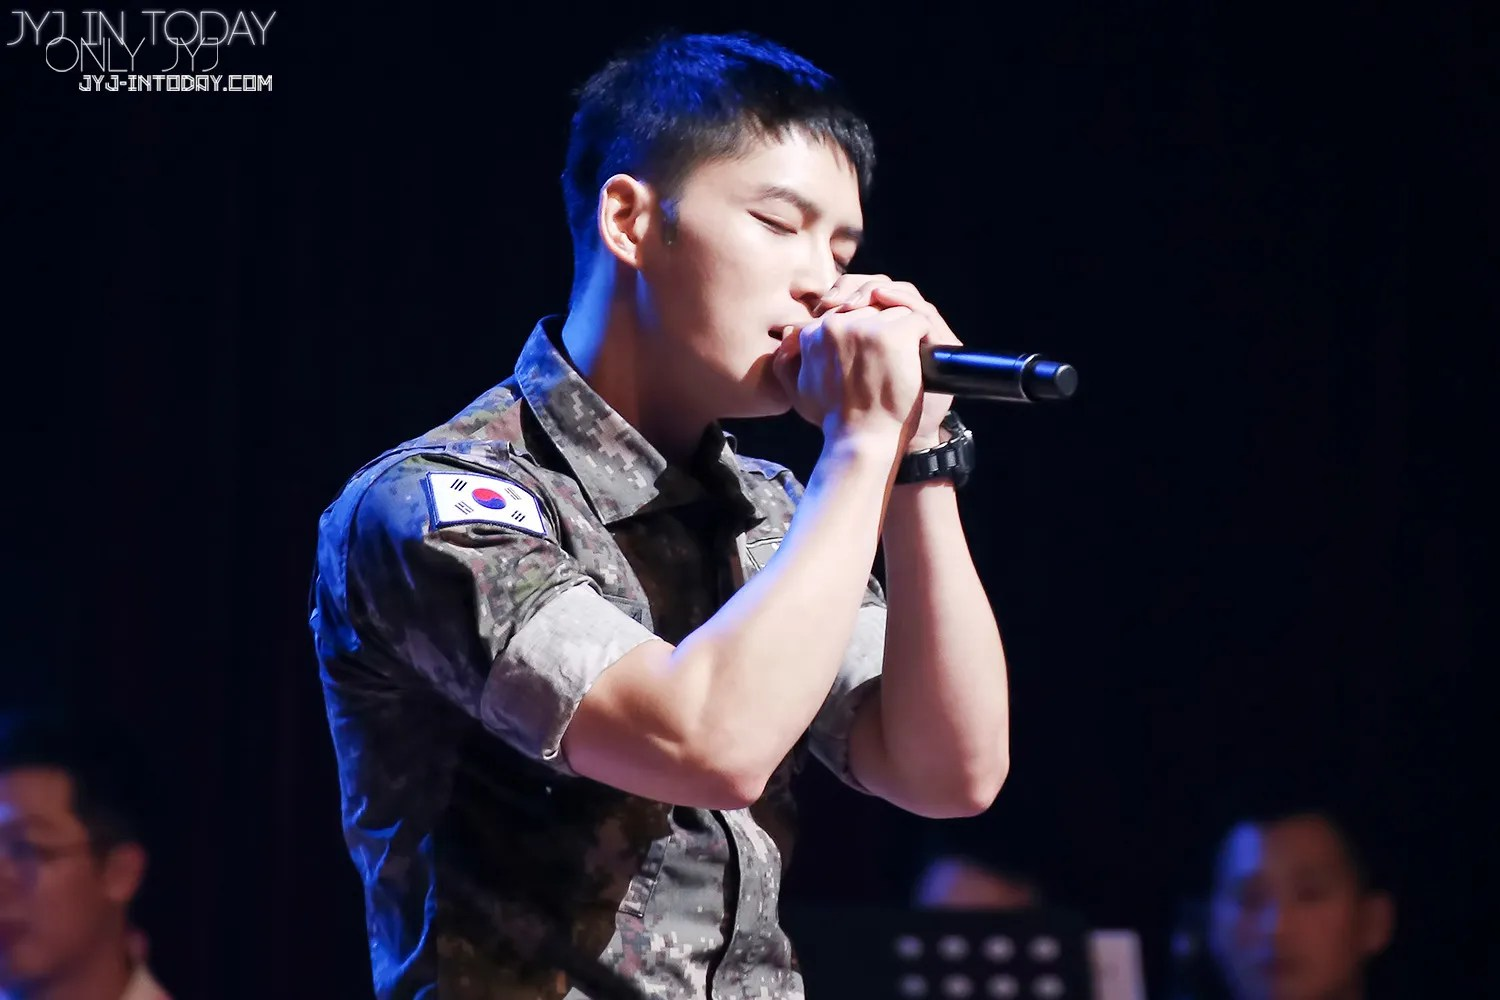 photo JYJinToday_01.jpg